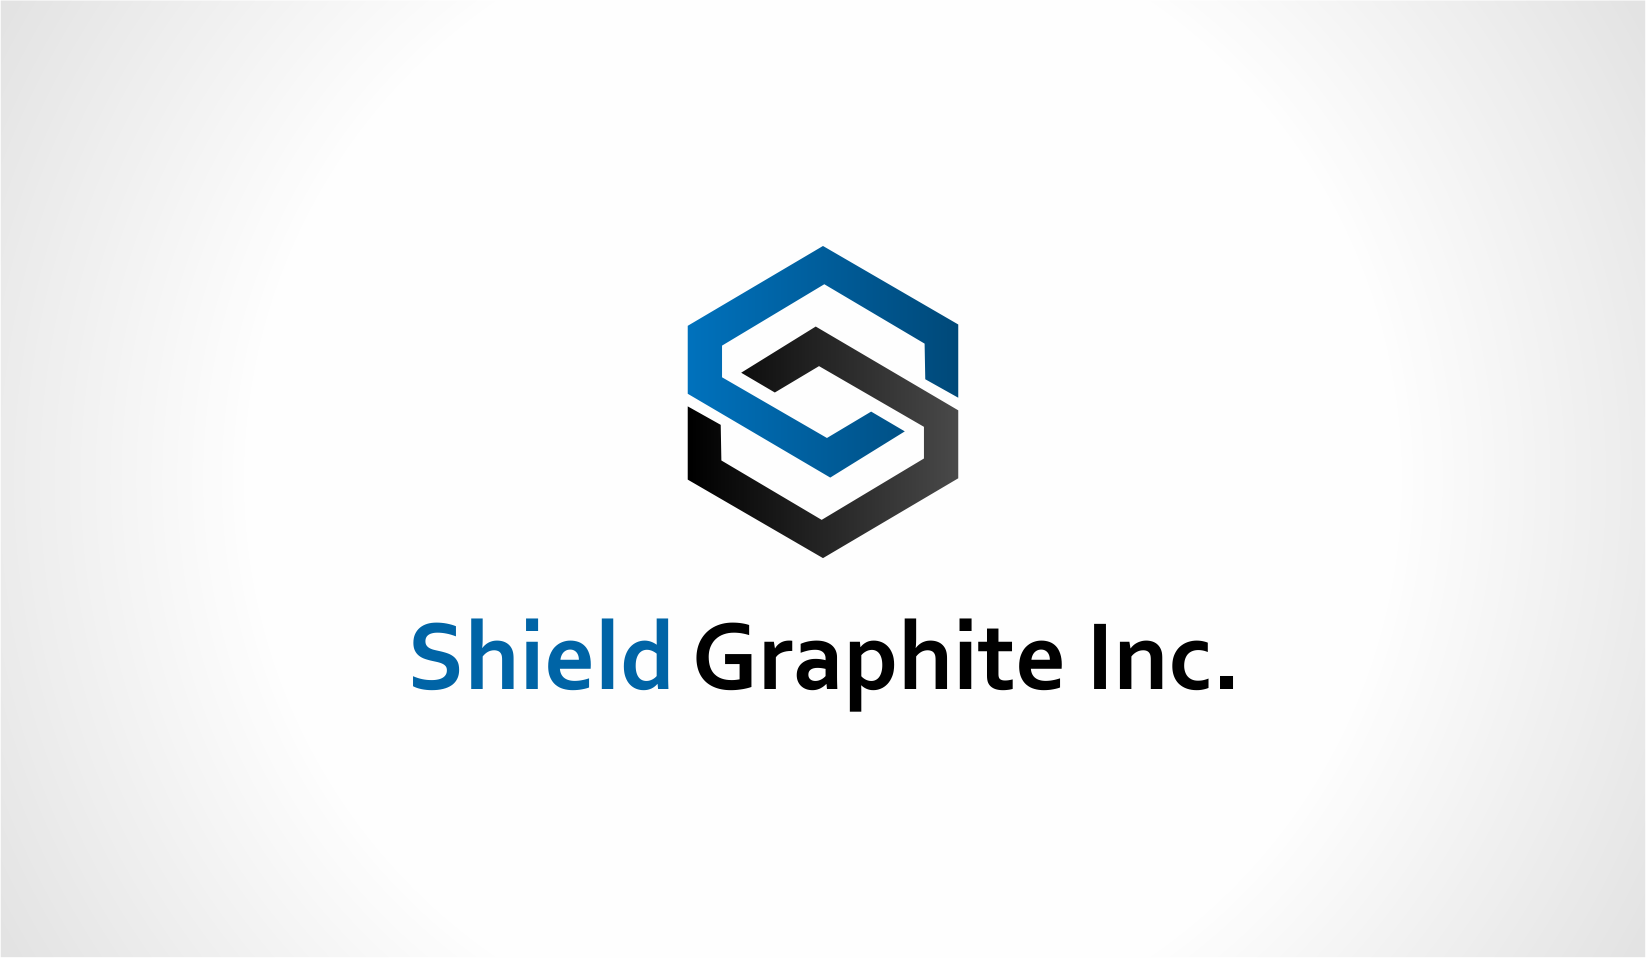 Logo Design by Muhammad Aslam - Entry No. 14 in the Logo Design Contest Imaginative Logo Design for Shield Graphite Inc..